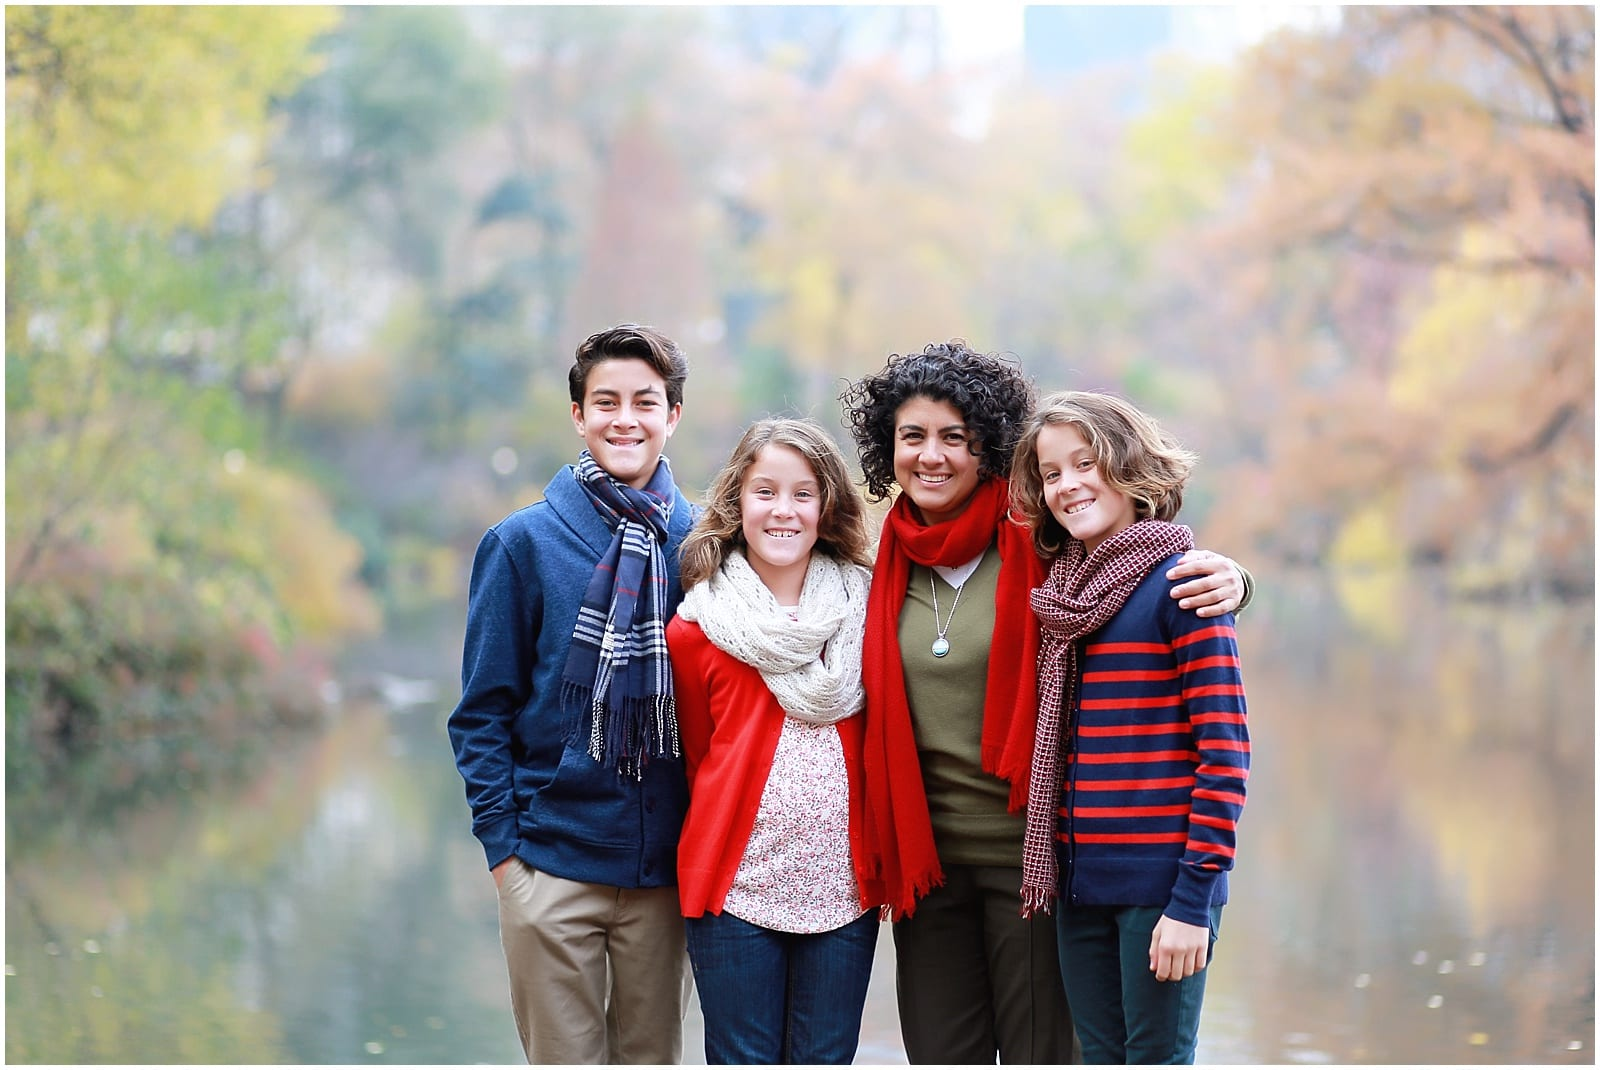 Family Christmas Photo Session in Central Park: NYC Family Photographer Helena Woods shares her tips for a successful Christmas photo session